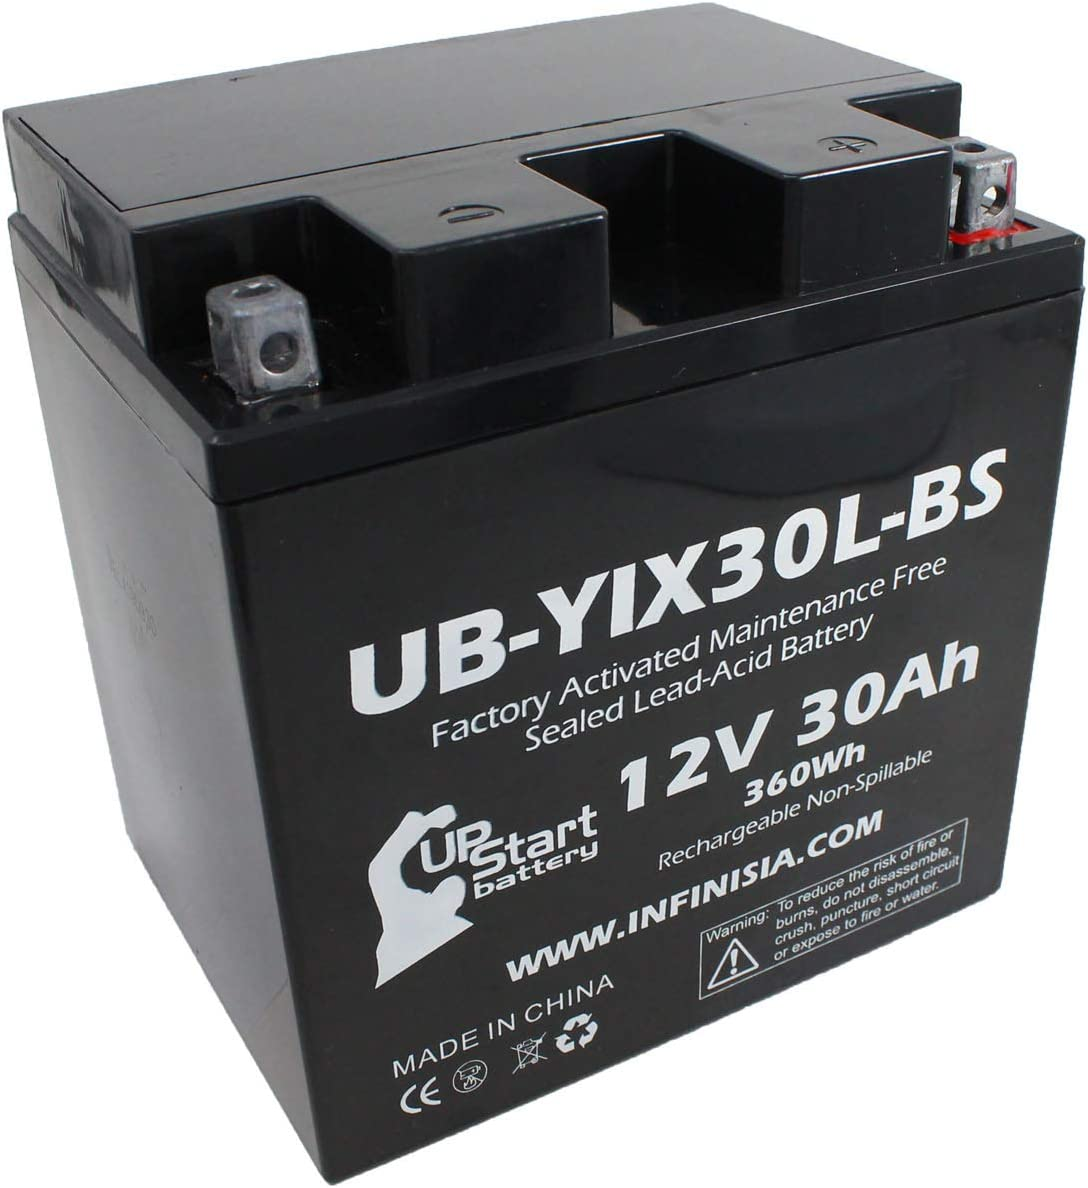 2021new shipping free UB-YIX30L-BS Battery quality assurance Replacement for 2015 Expediti BRP SKI-DOO